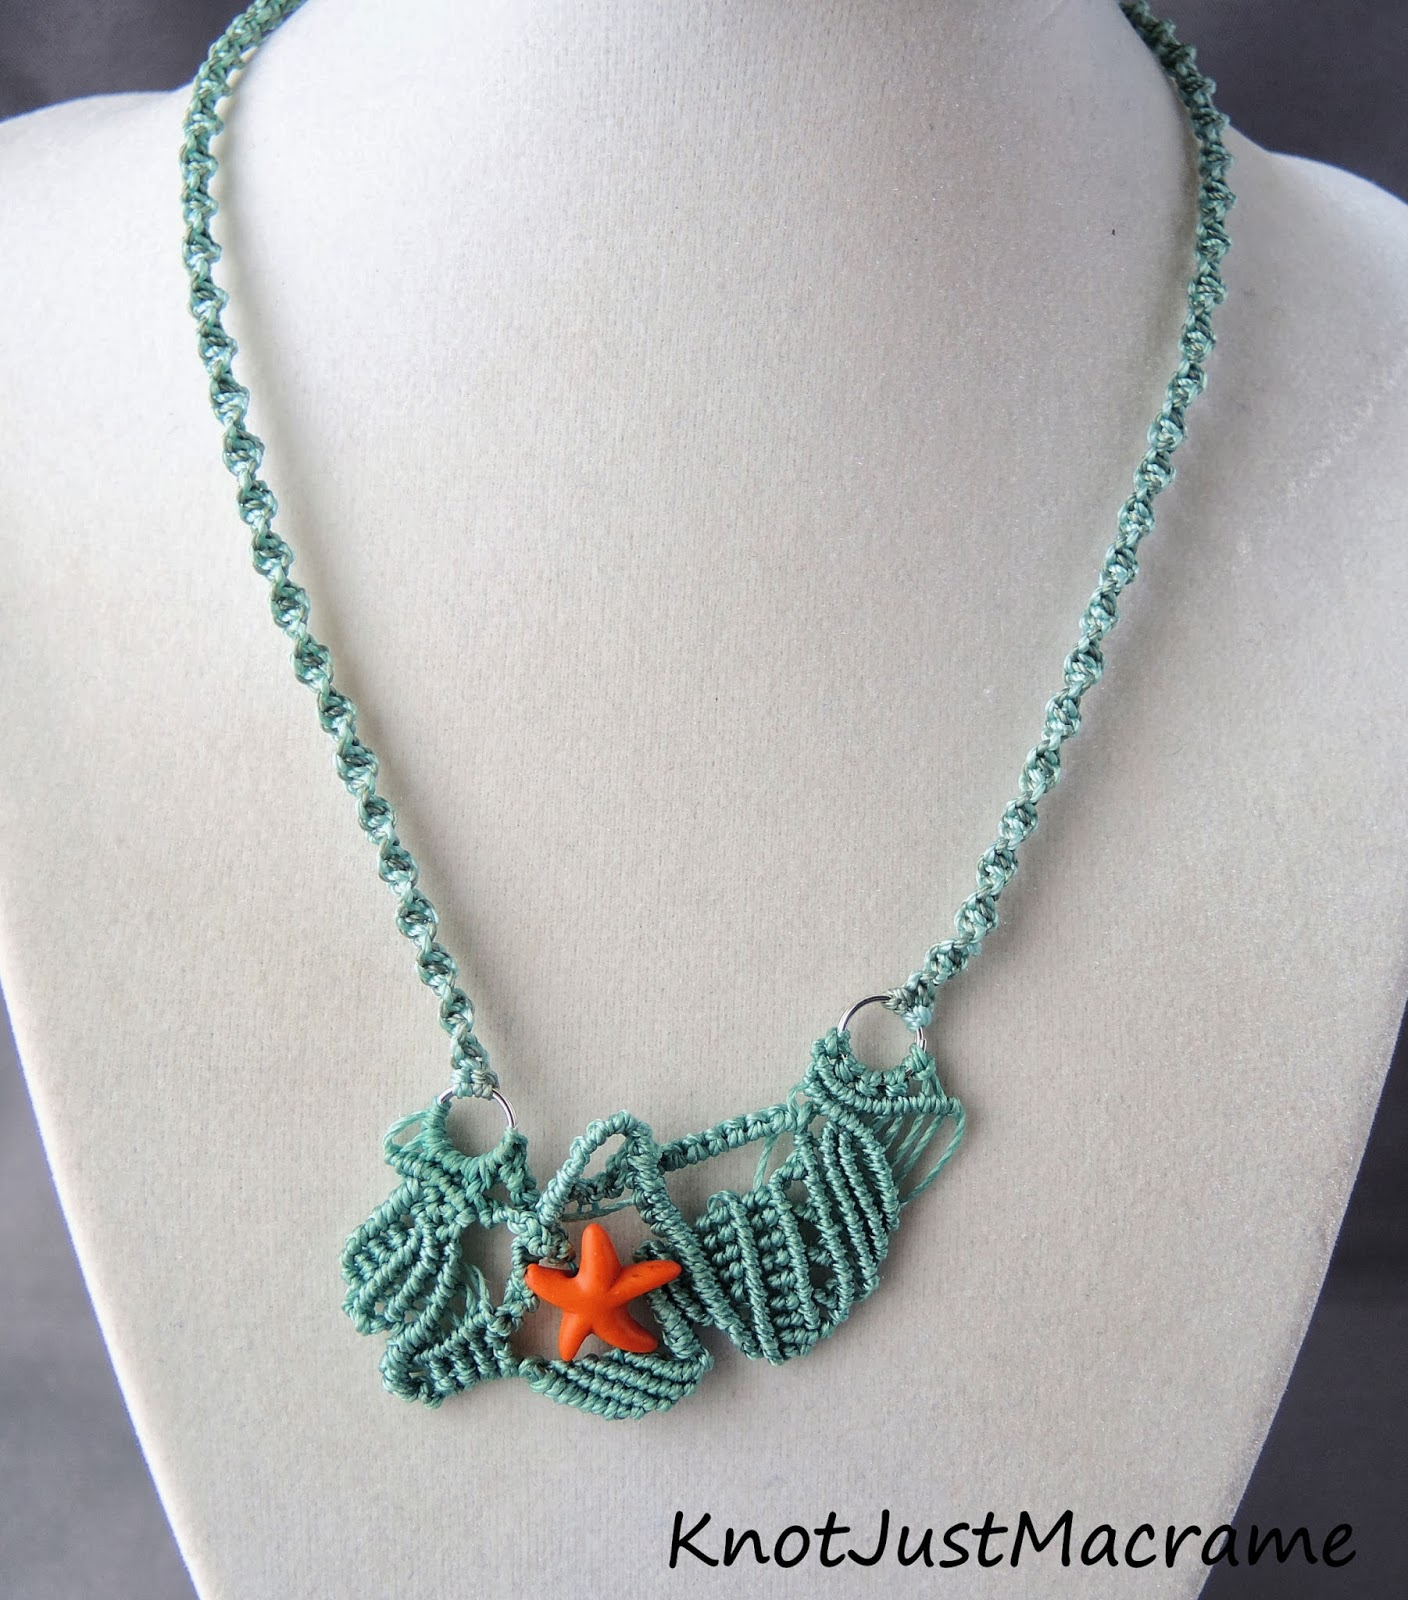 Beachy free form micro macrame in turquoise